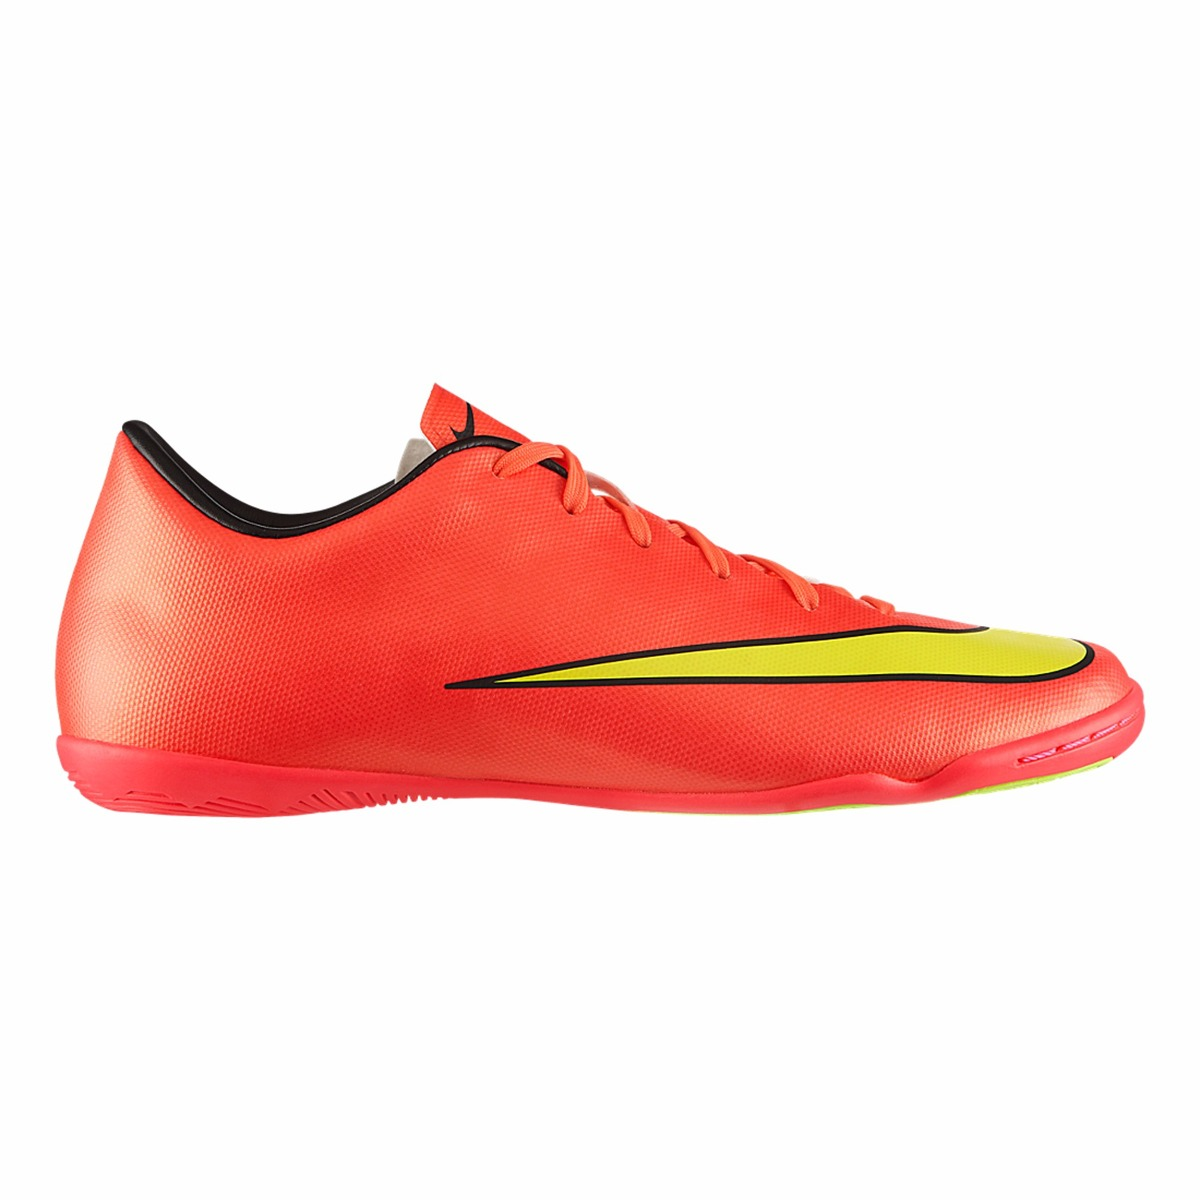 f3edb2398a ... where to buy chuteira futsal nike mercurial victory 5 v ic vermelha.  carregando zoom.